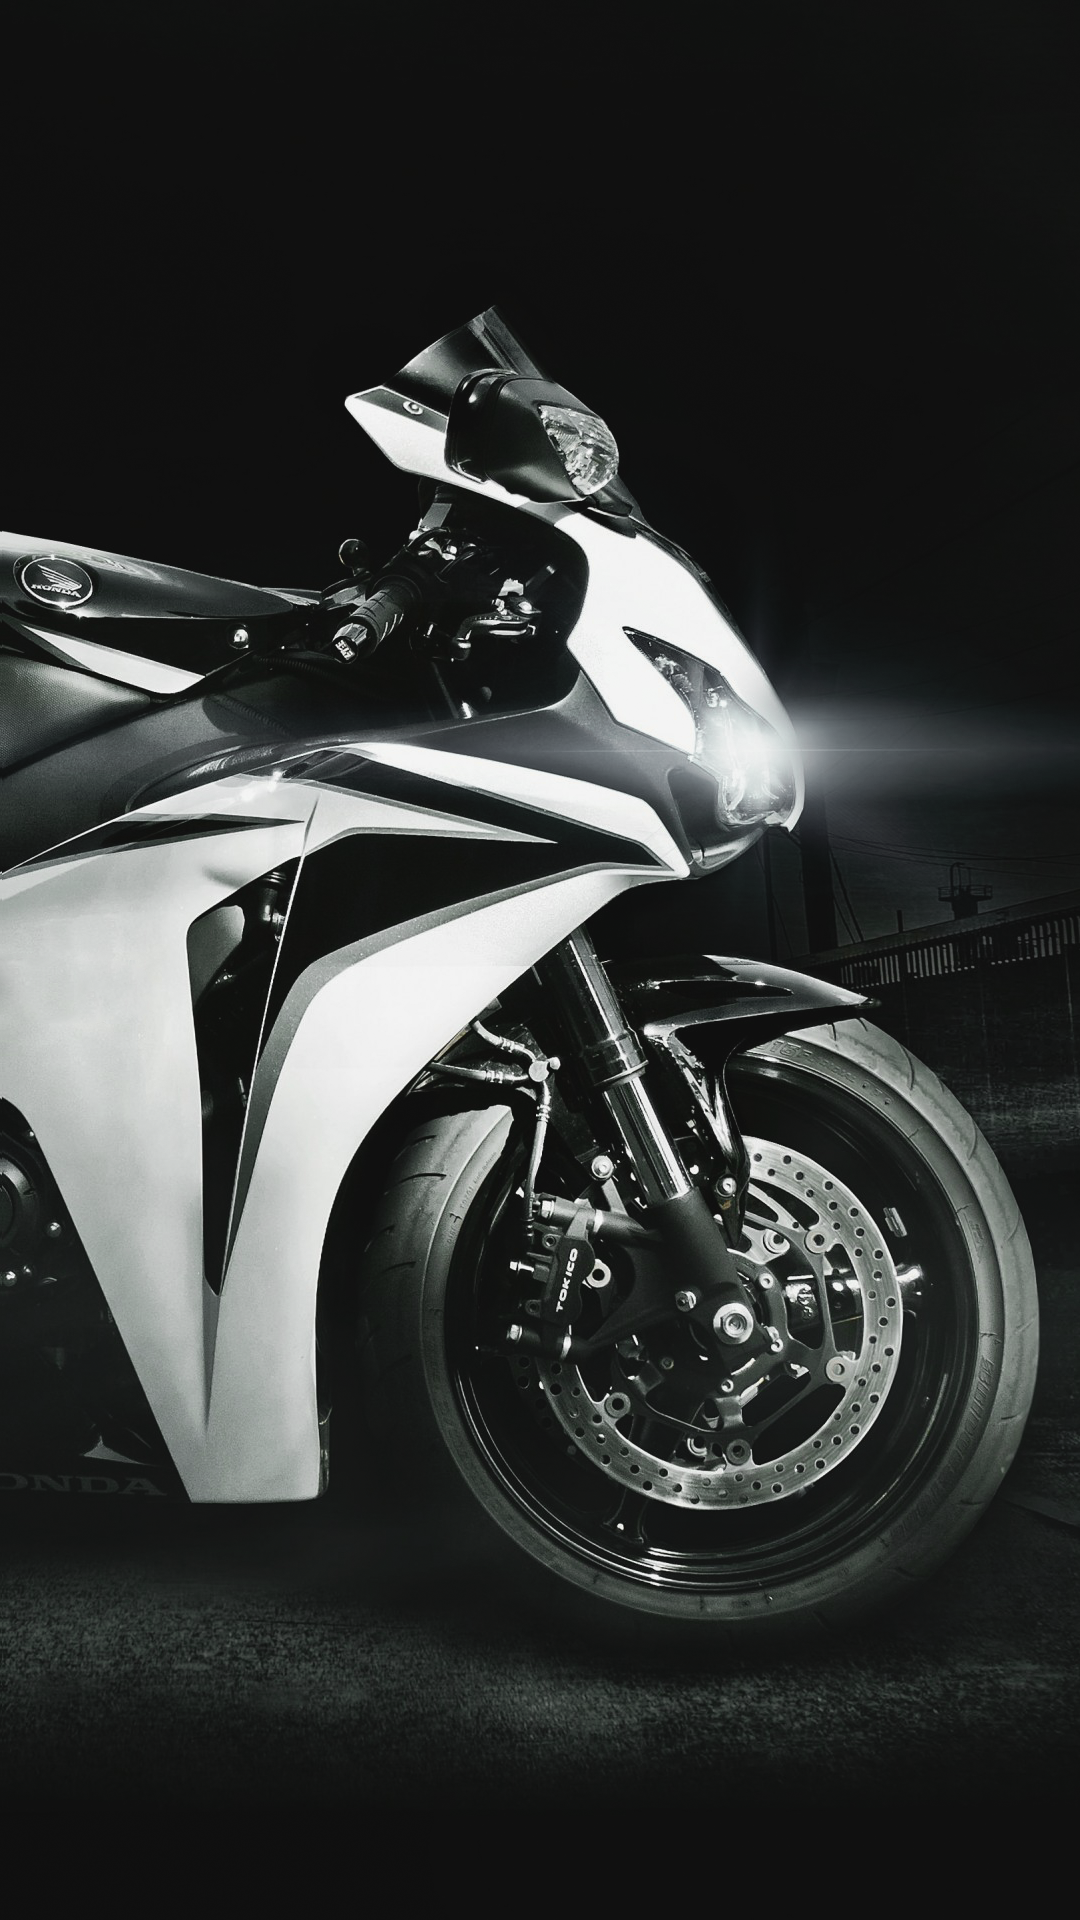 Ultra HD Honda Superbike Wallpaper For Your Mobile Phone ...Honda Superbike 2013 Wallpaper